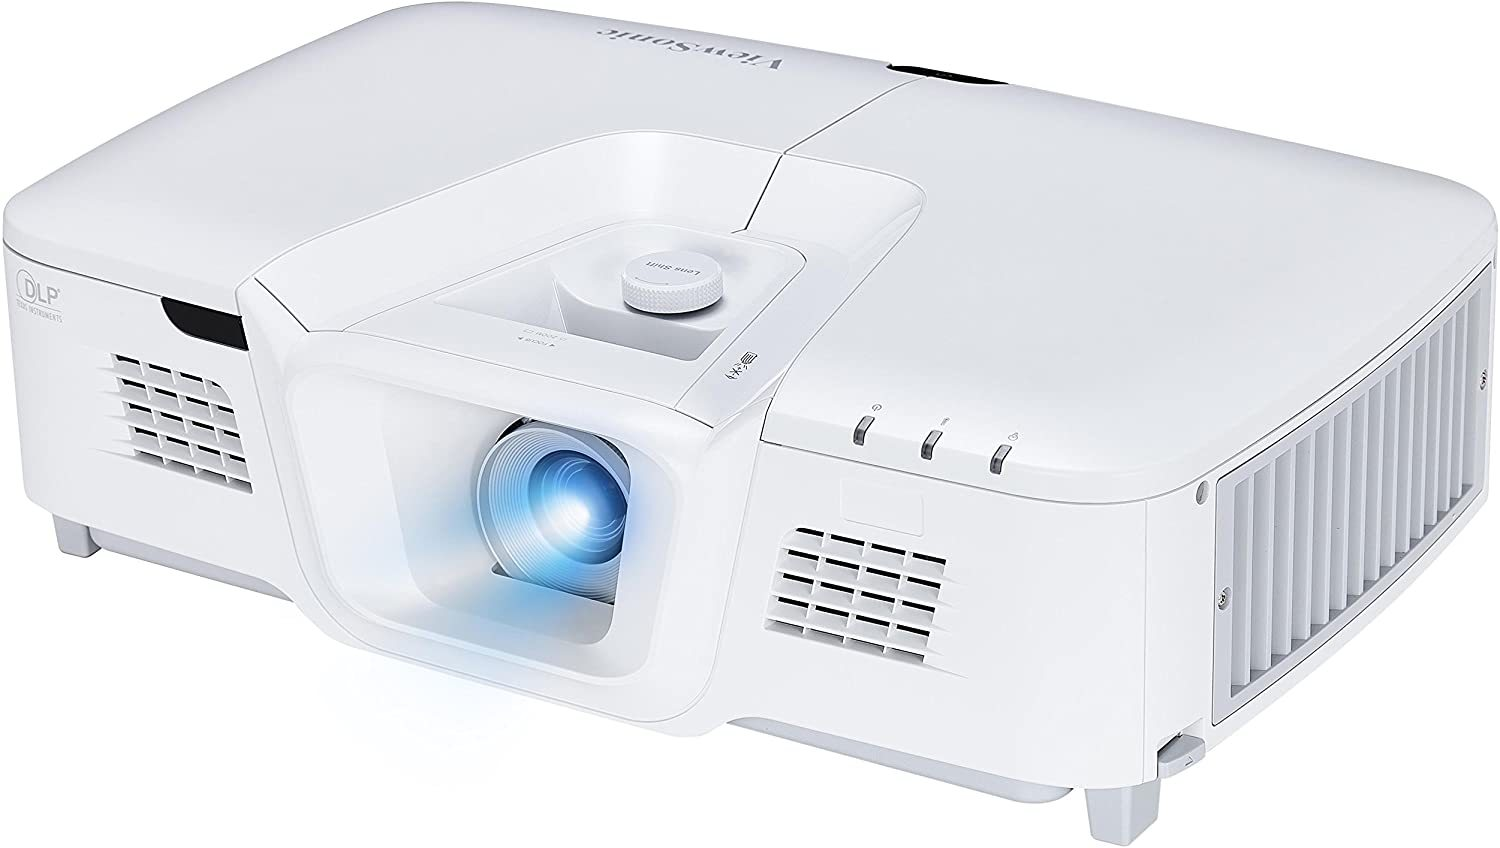 PG800HD 5000 Lumens 1080p HDMI Networkable Projector with Lens Shift, White